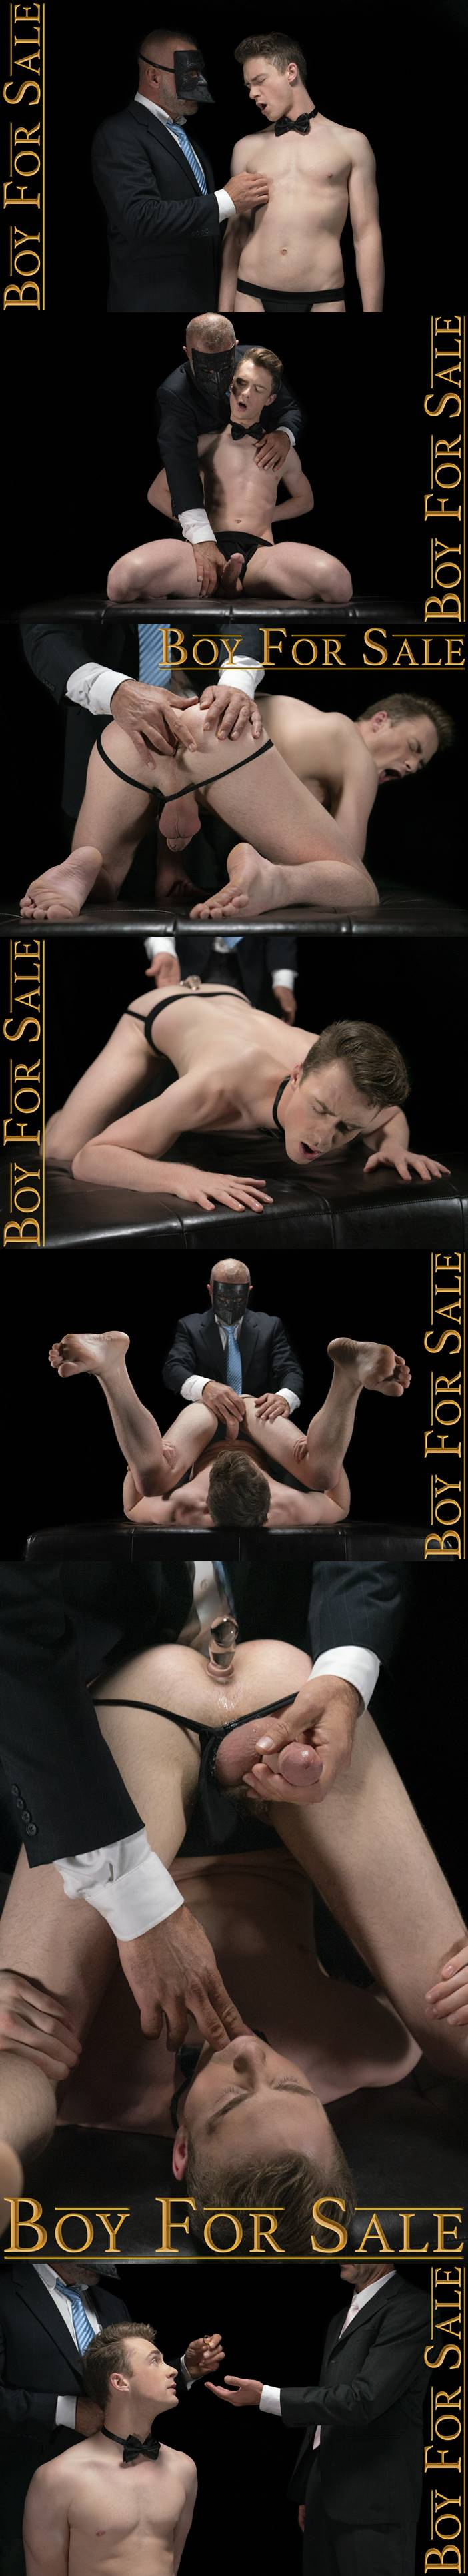 Boy For Sale - The Boy Cole Blue: Chapter 2 with Damien Oaks & Felix Kamp